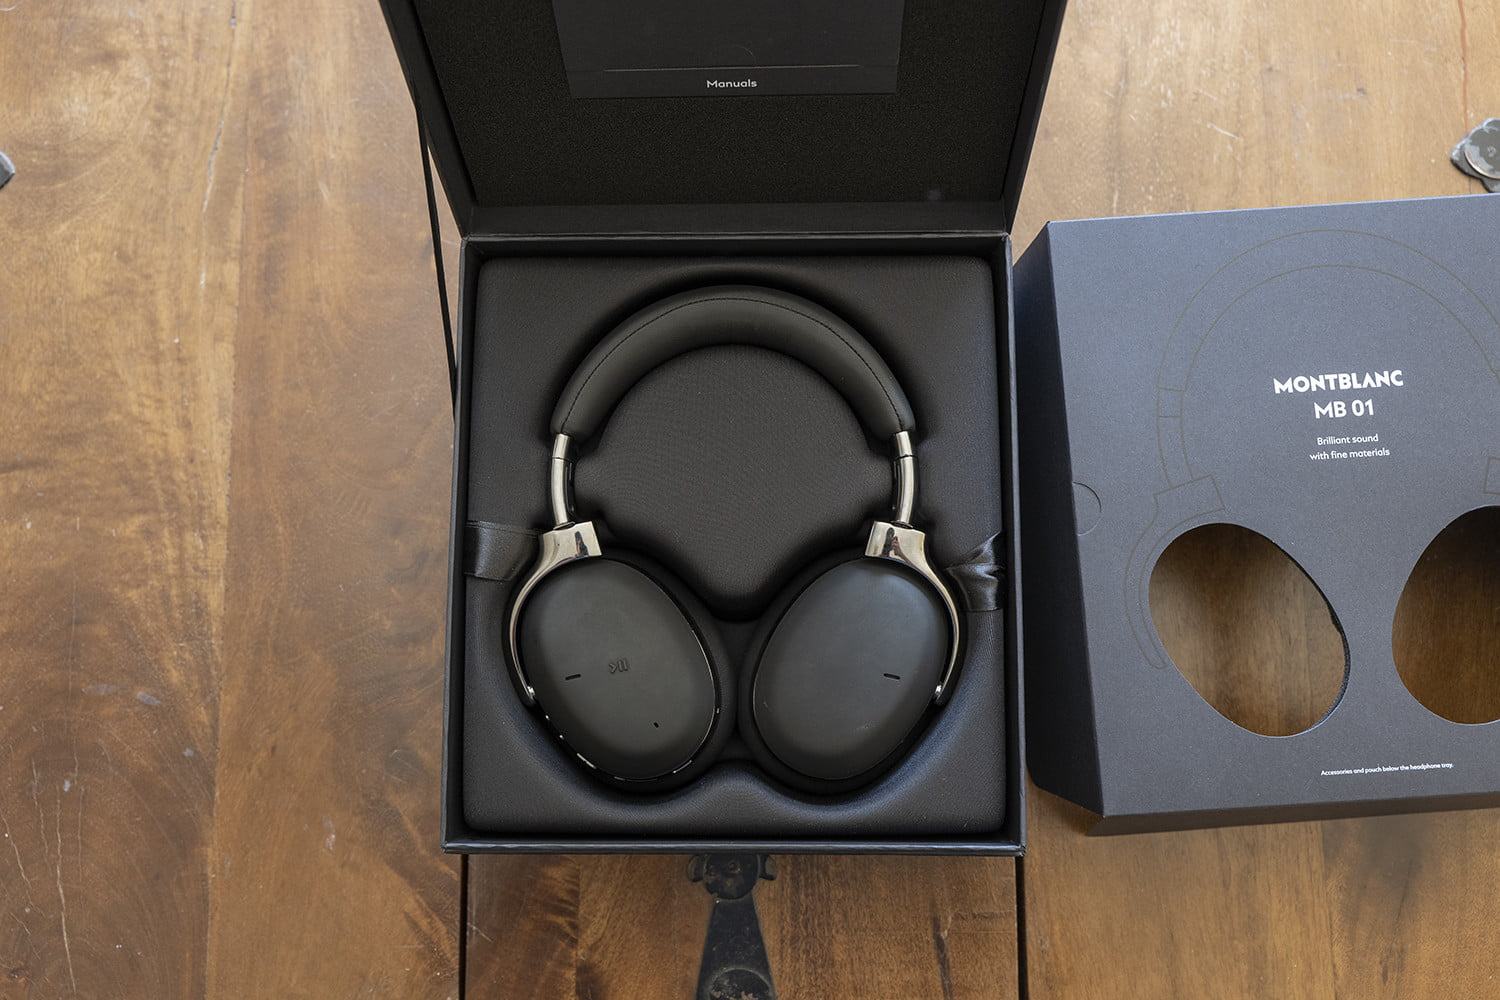 montblanc mb01 headphones review 4